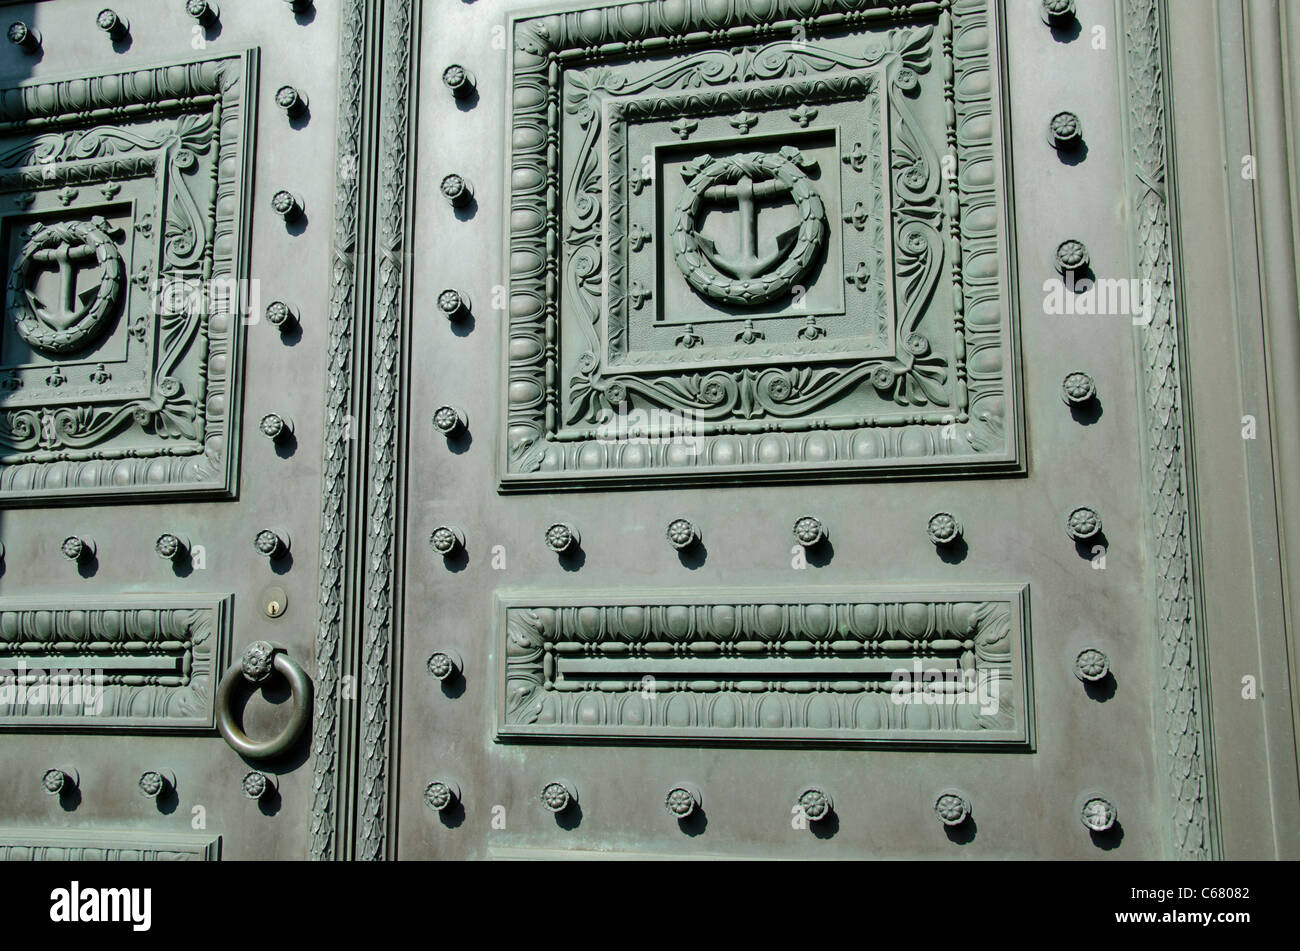 Rhode Island, Providence. The Old Stone Bank, c. 1819. Detail of metal doors with anchor. - Stock Image